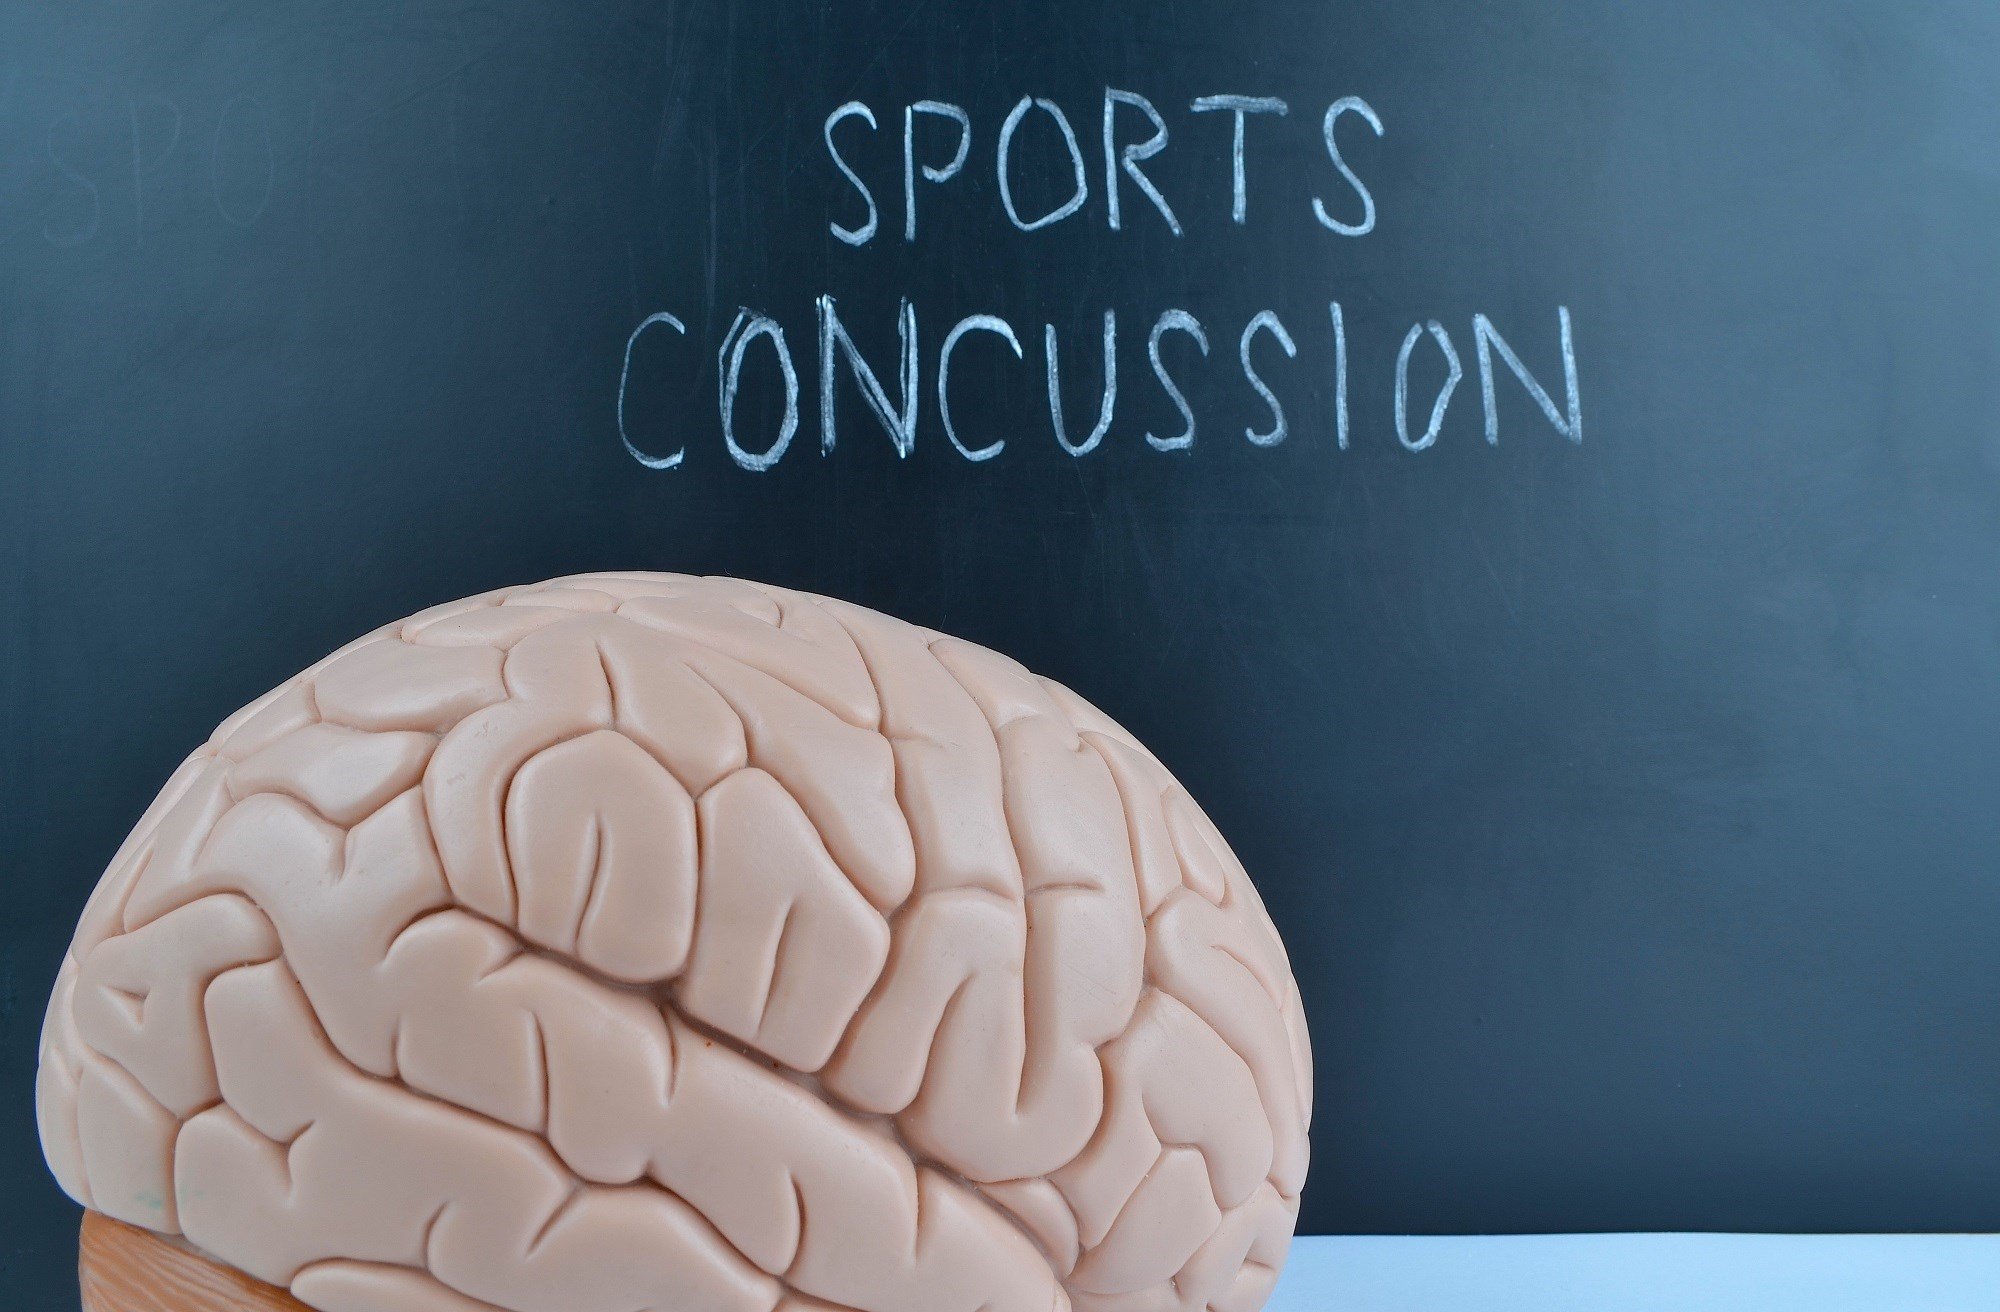 Review of Factors Impacting Sport-Related Concussion Headaches